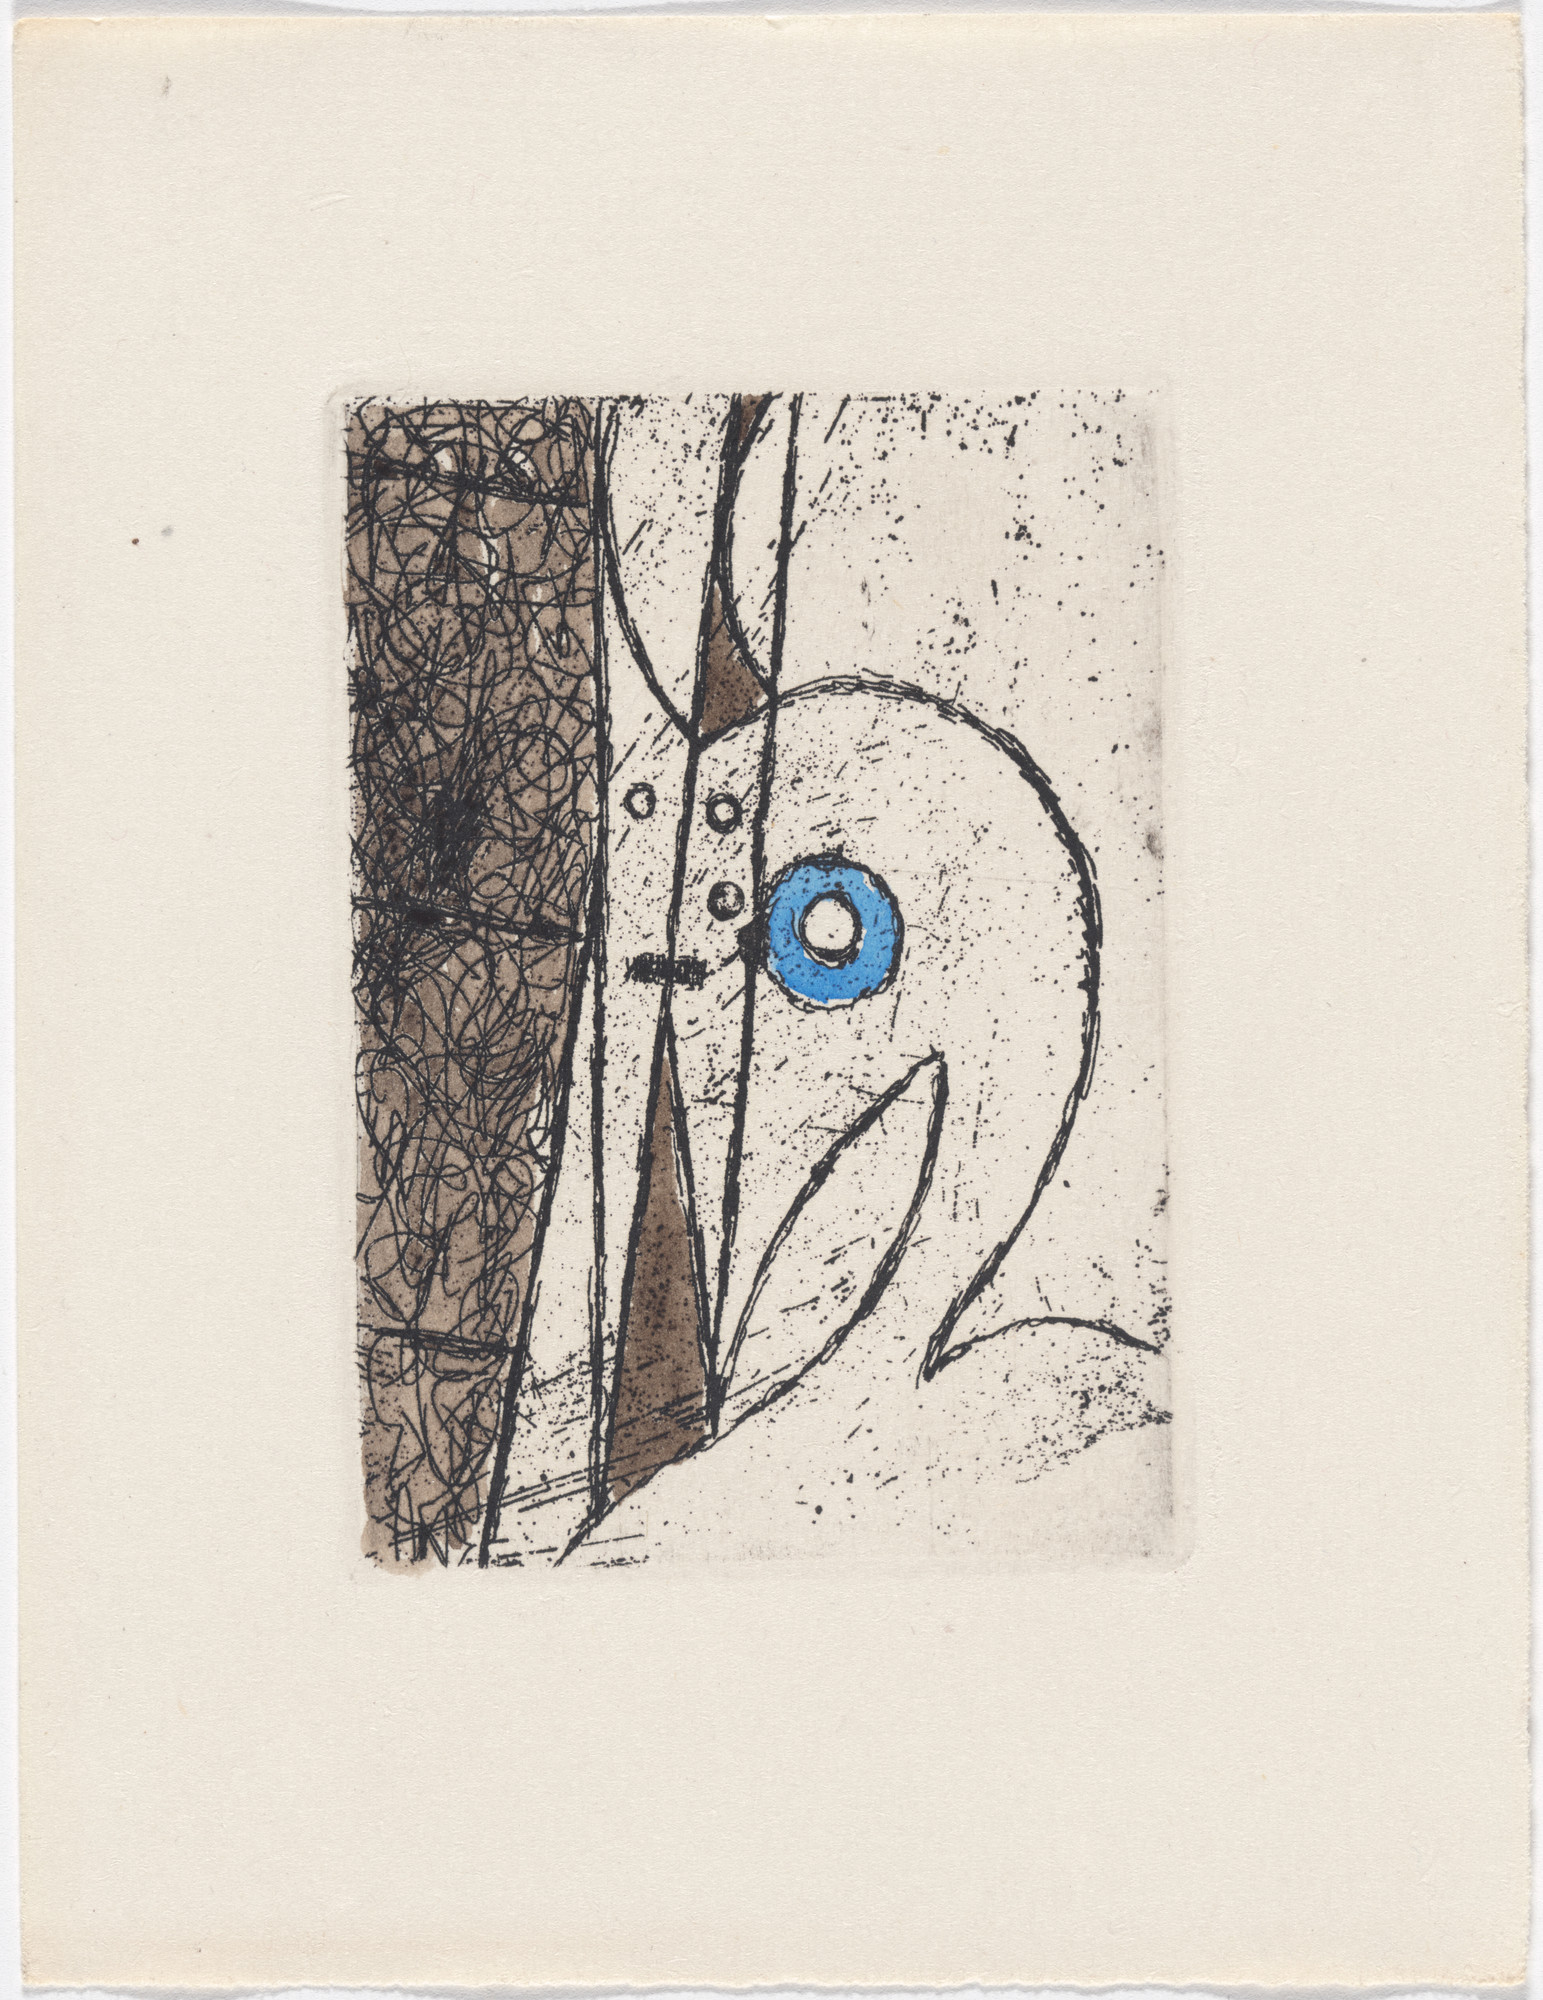 Max Ernst. Variant of plate (page 161) from Monsieur Aa l'antiphilosophe: Volume I from L'Antitête. 1947–49, published 1949